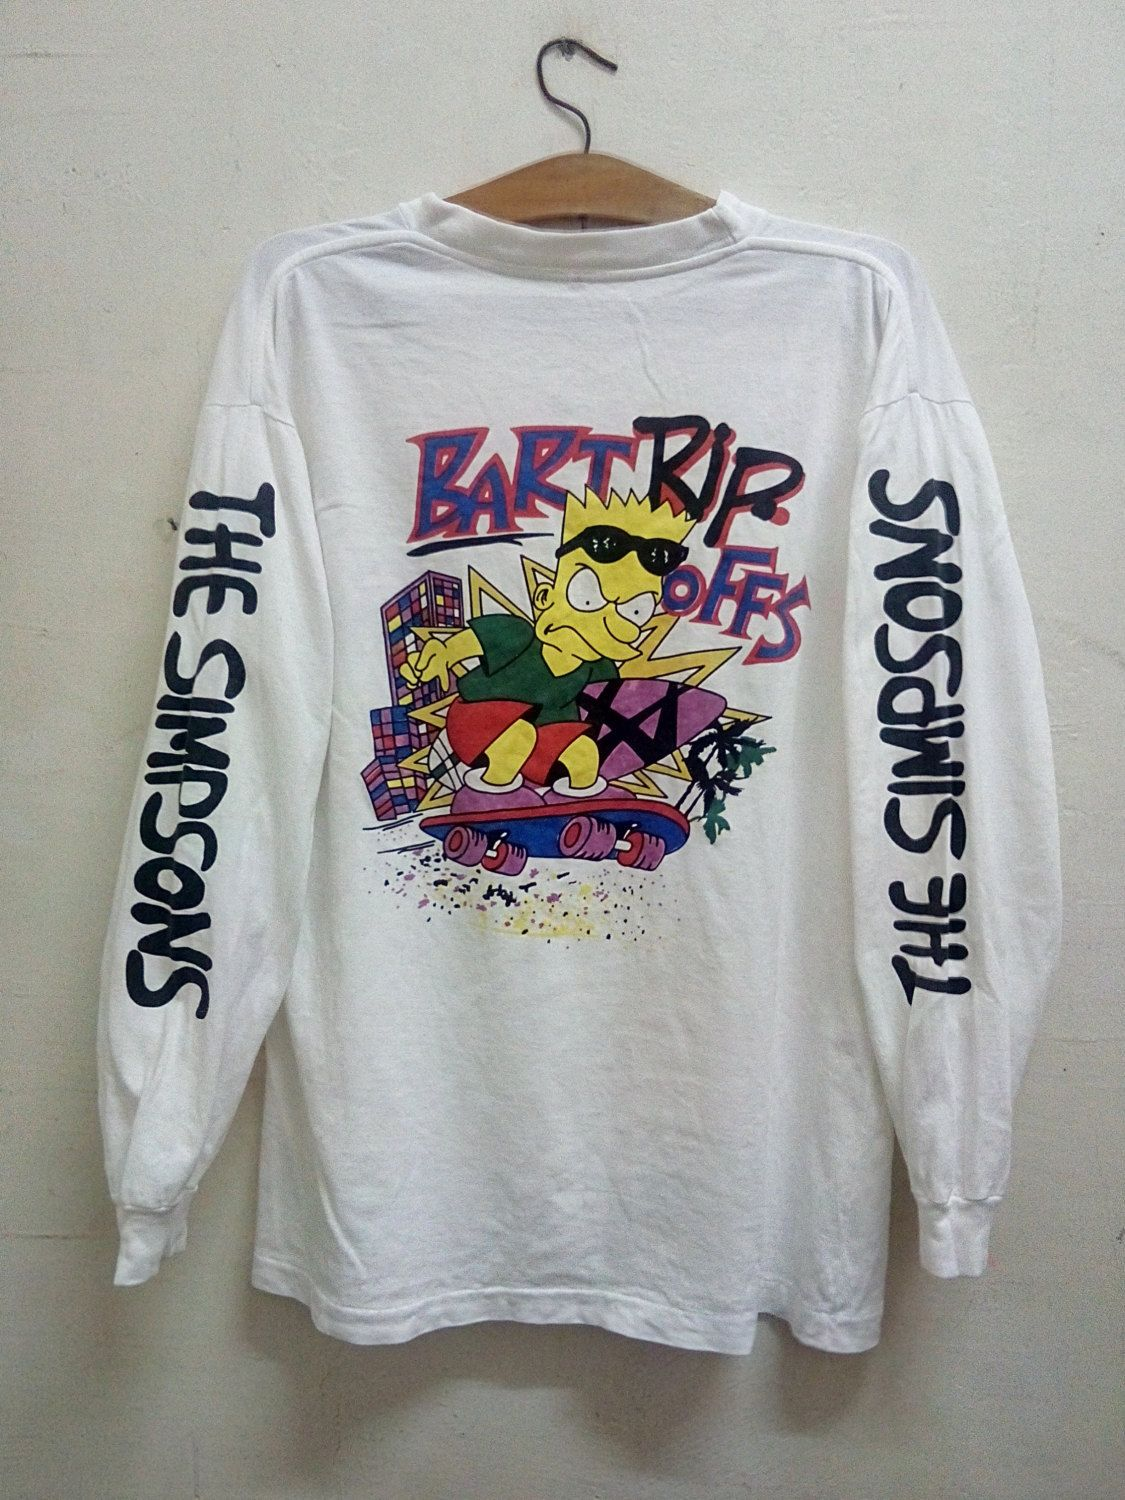 Shirt rip design - Vintage Badass Bootleg Cartoon Bart Simpsons Spell Out Design Bart Rip Offs Skate And Surf Long Sleeves Hip Hop Era Size L By Malayathriftzone On Etsy